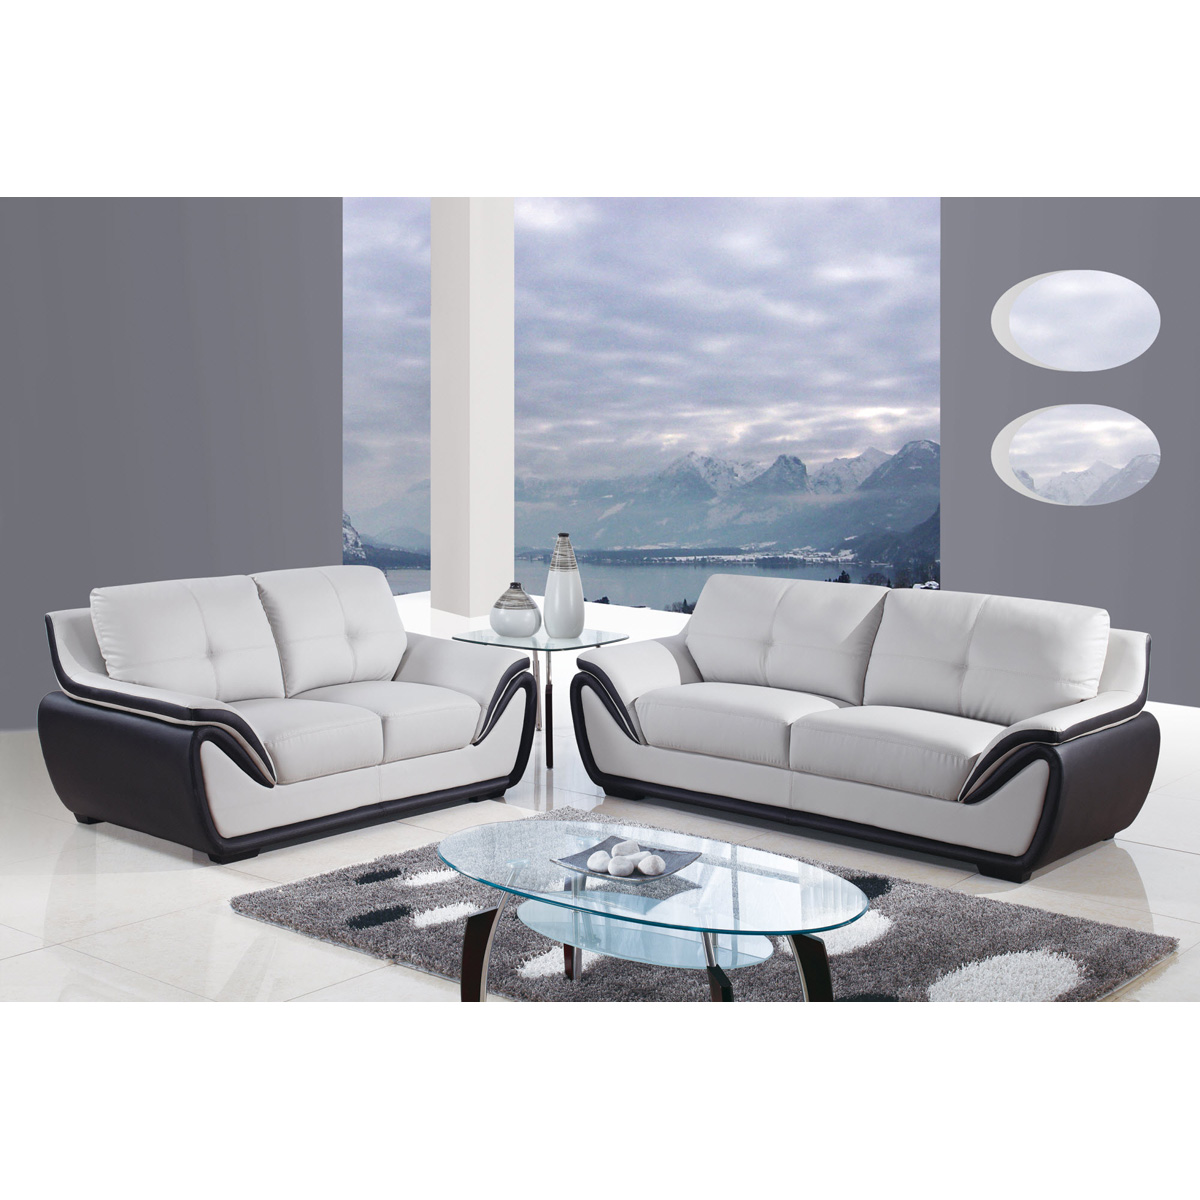 Bryson Sofa Set in Gray and Black